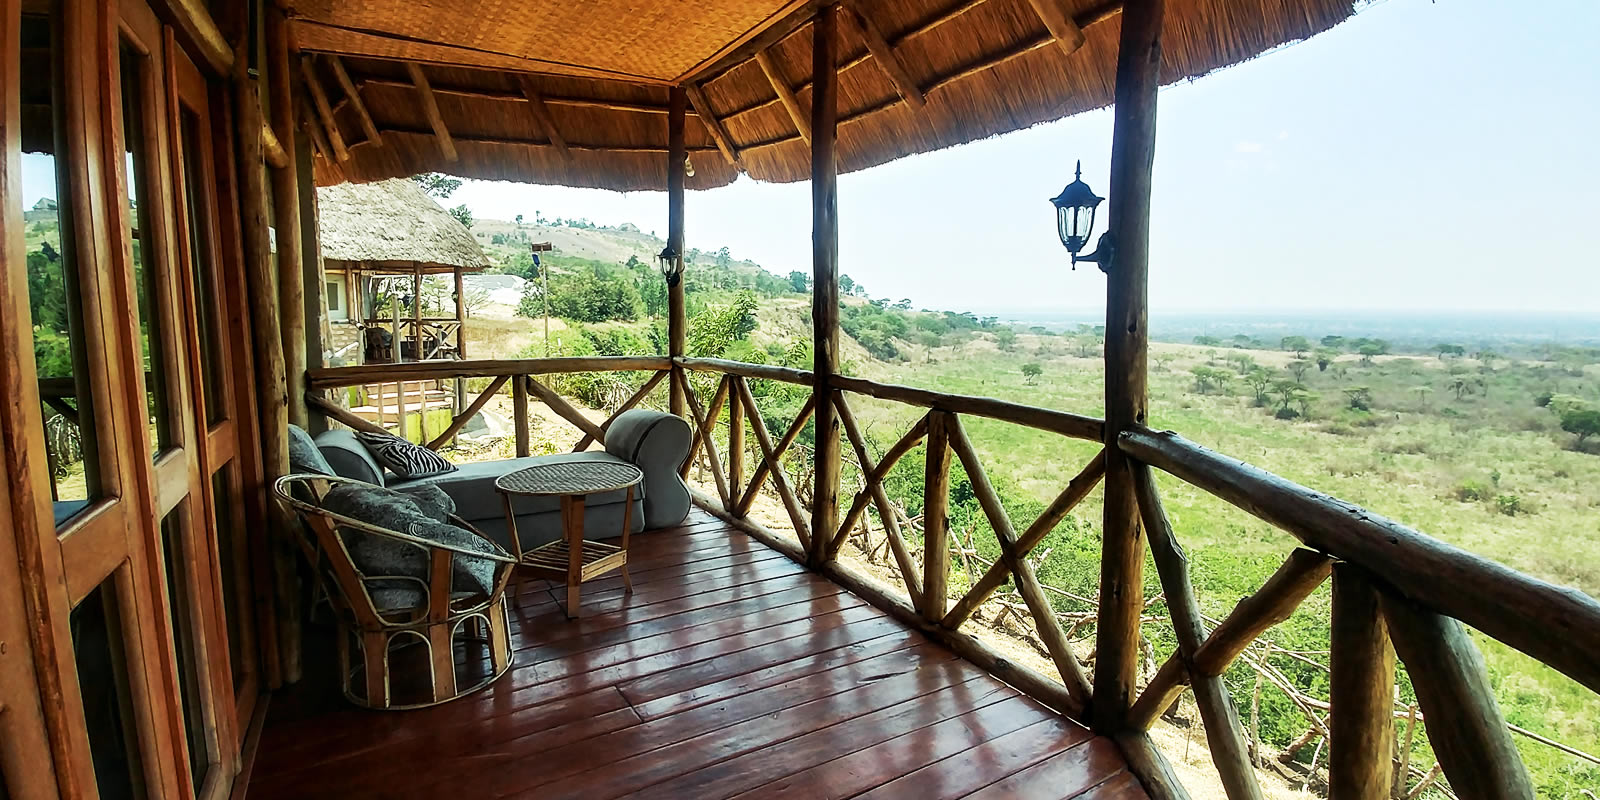 safari lodge in Queen Elizabeth national park Uganda